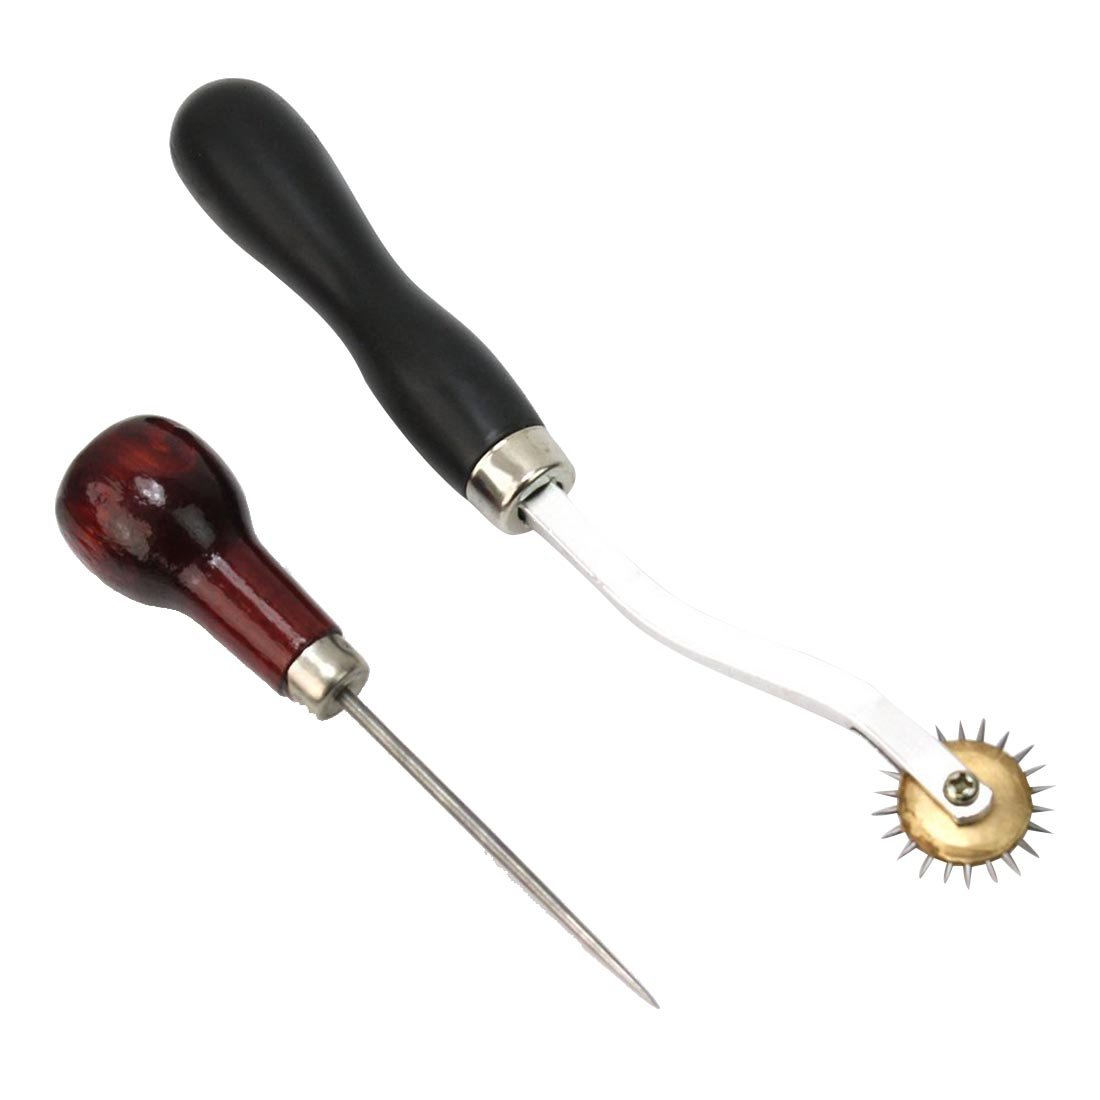 SODIAL Useful Leather Cloth Overstitch Awl Tool Pin Sewing Punching Hole Maker 4mm New